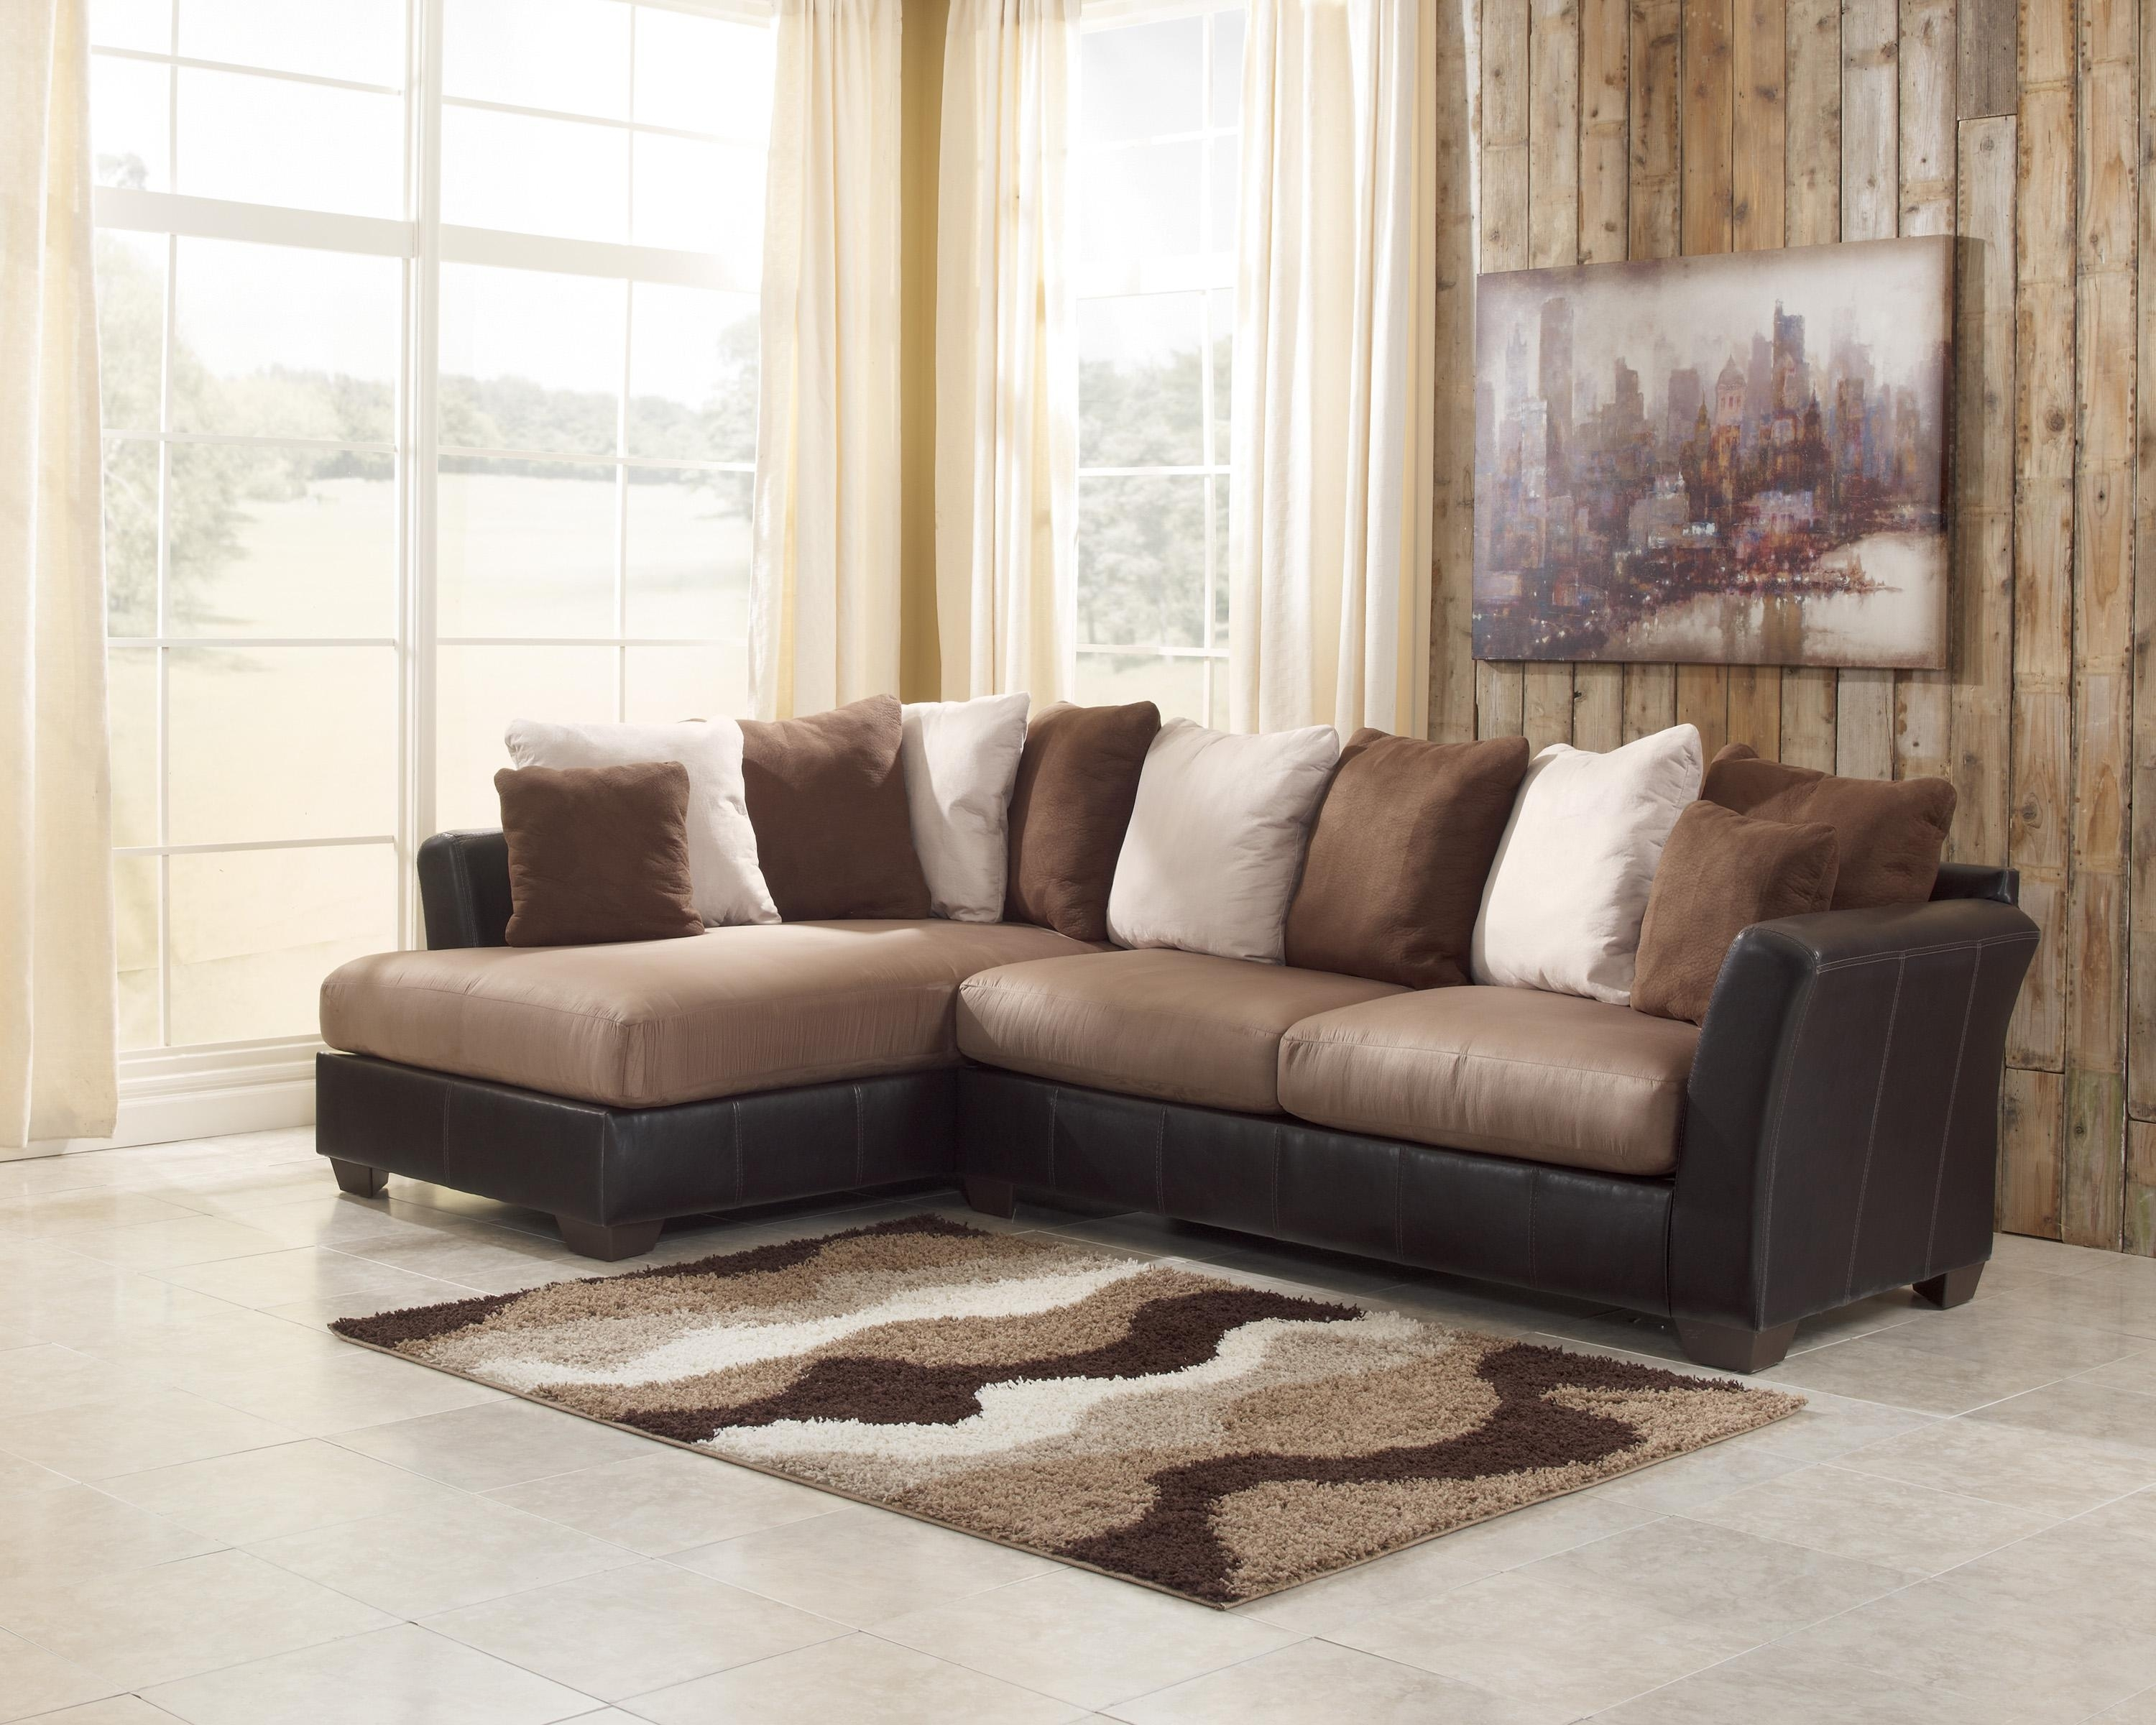 Popular Photo of Sectional Sofas That Come In Pieces